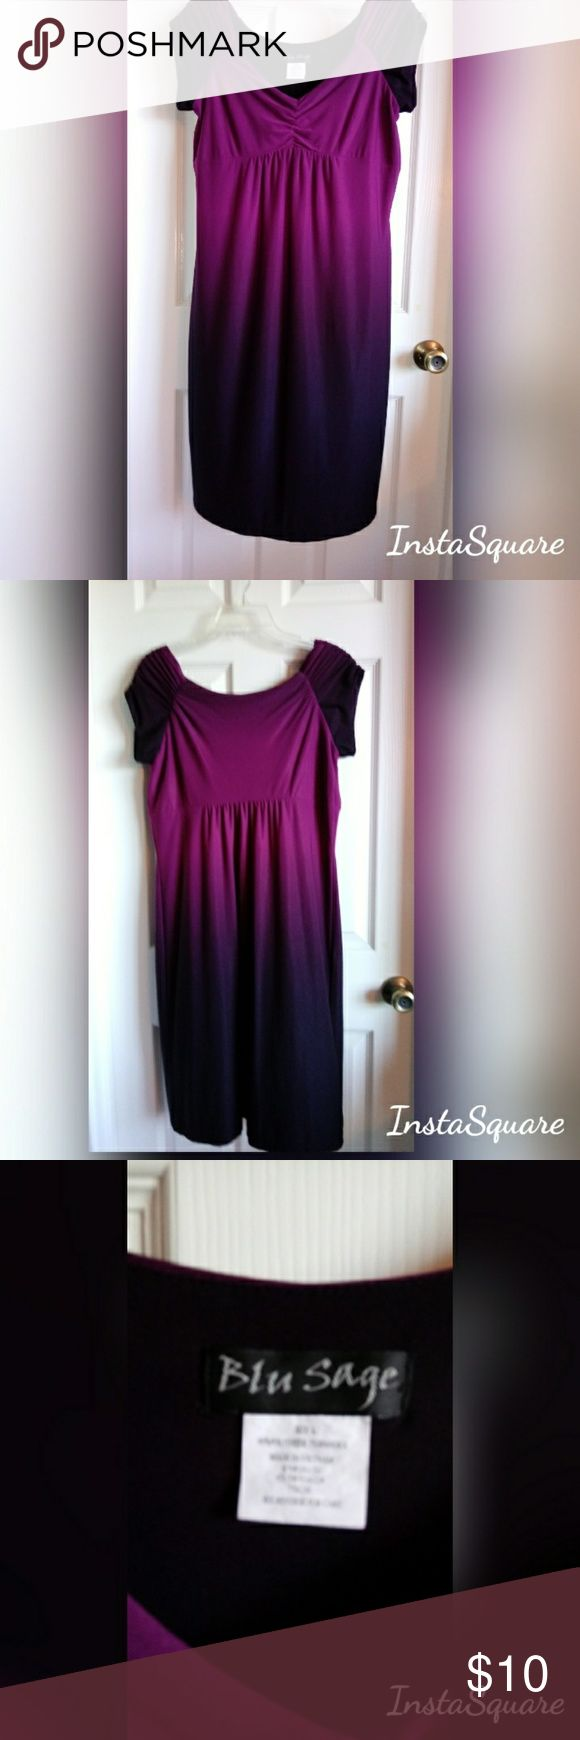 """{Blu Sage} Purple Black Monte Semi-Empire Waist Dr {Blu Sage} Purple Black Monte Semi-Empire Waist Dress.  Super Flattering Cap Sleeve Pre Loved Minimal wear Measurements approximate laying flat: armpit 18"""", under bust 17.5"""", top of back to hem 35""""  I'm 5'5"""" hit above knee.   My mom was Original owner.   She gave to me but it doesn't fit.  Stretchy poly spandex blend.  Needs loving home.  💗 Blu Sage Dresses"""